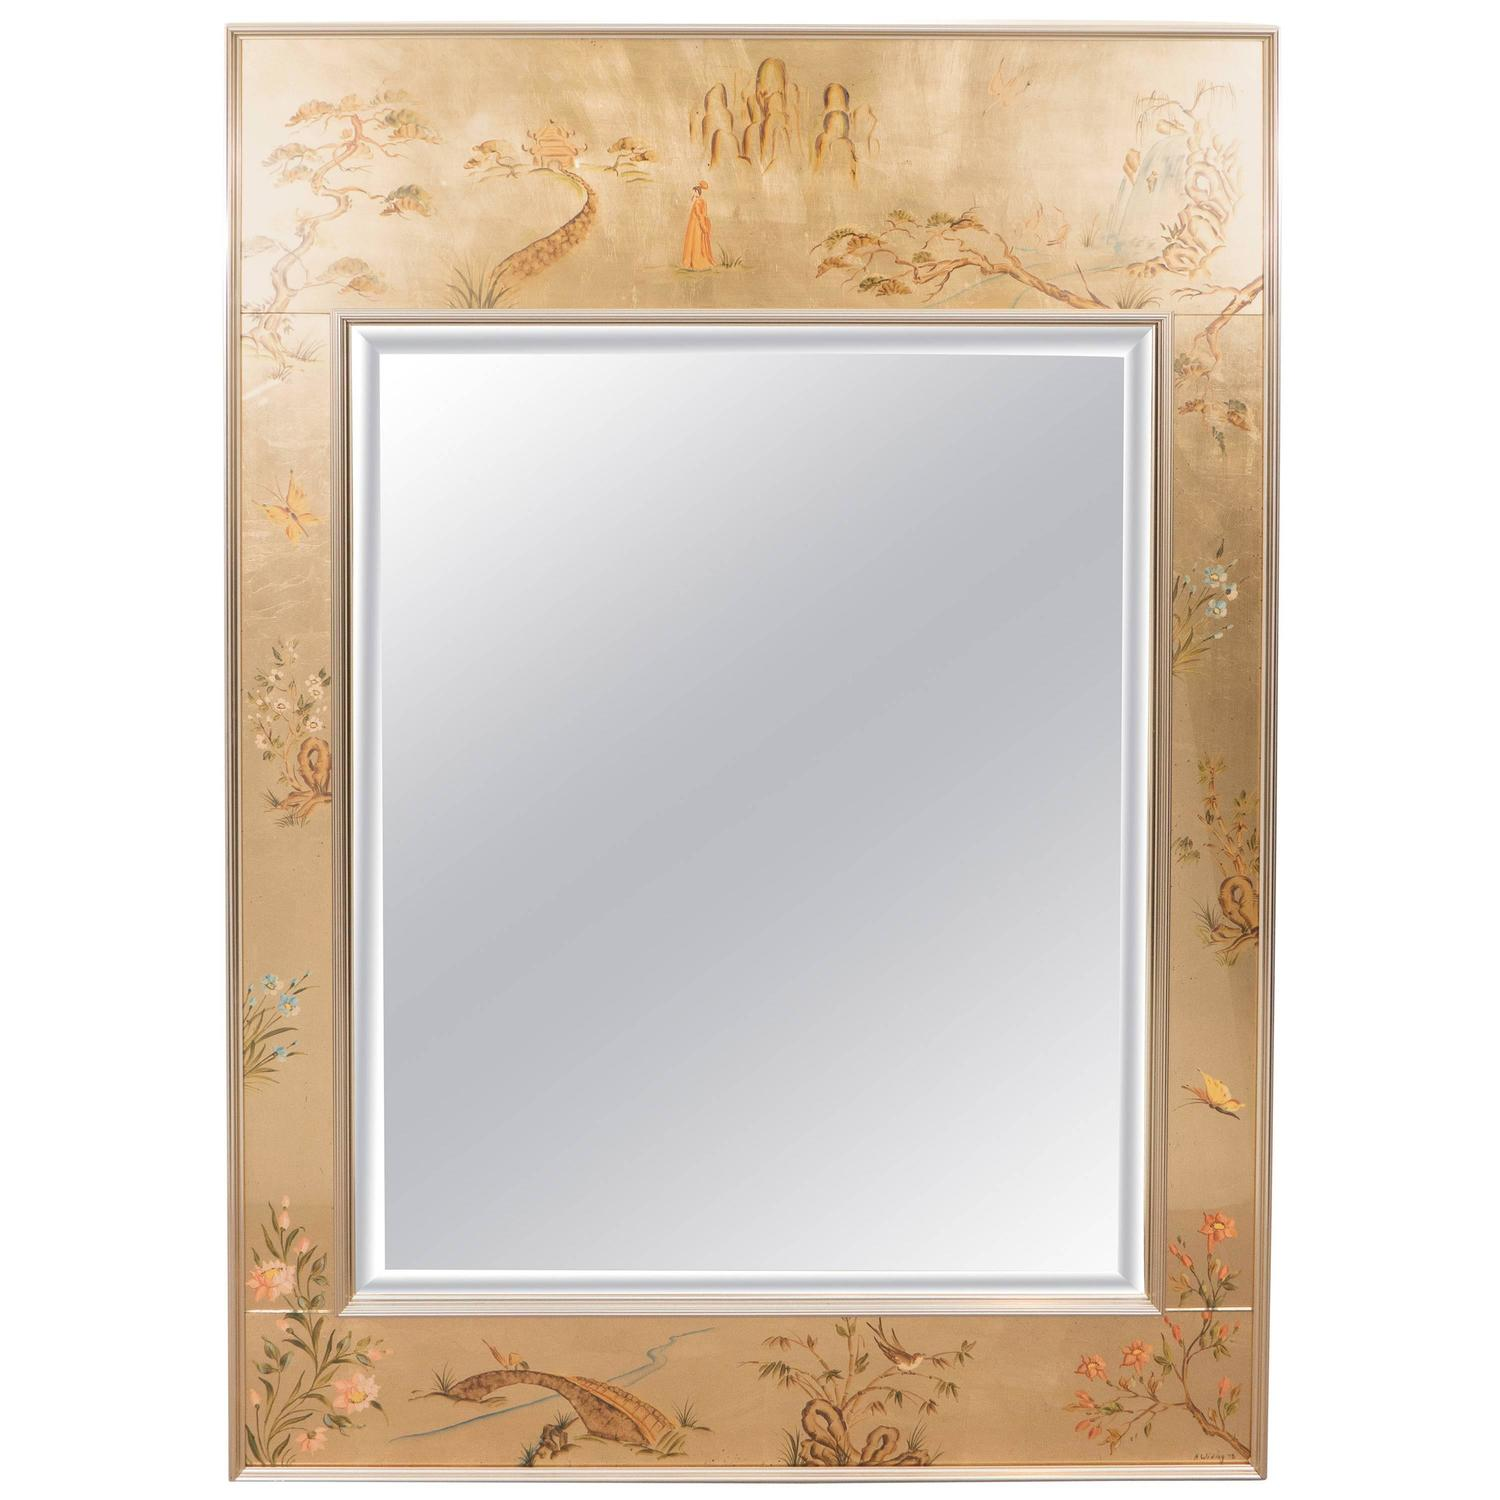 Labarge Mirror With Hand Painted Églomisé Frame In The Chinoiserie Style